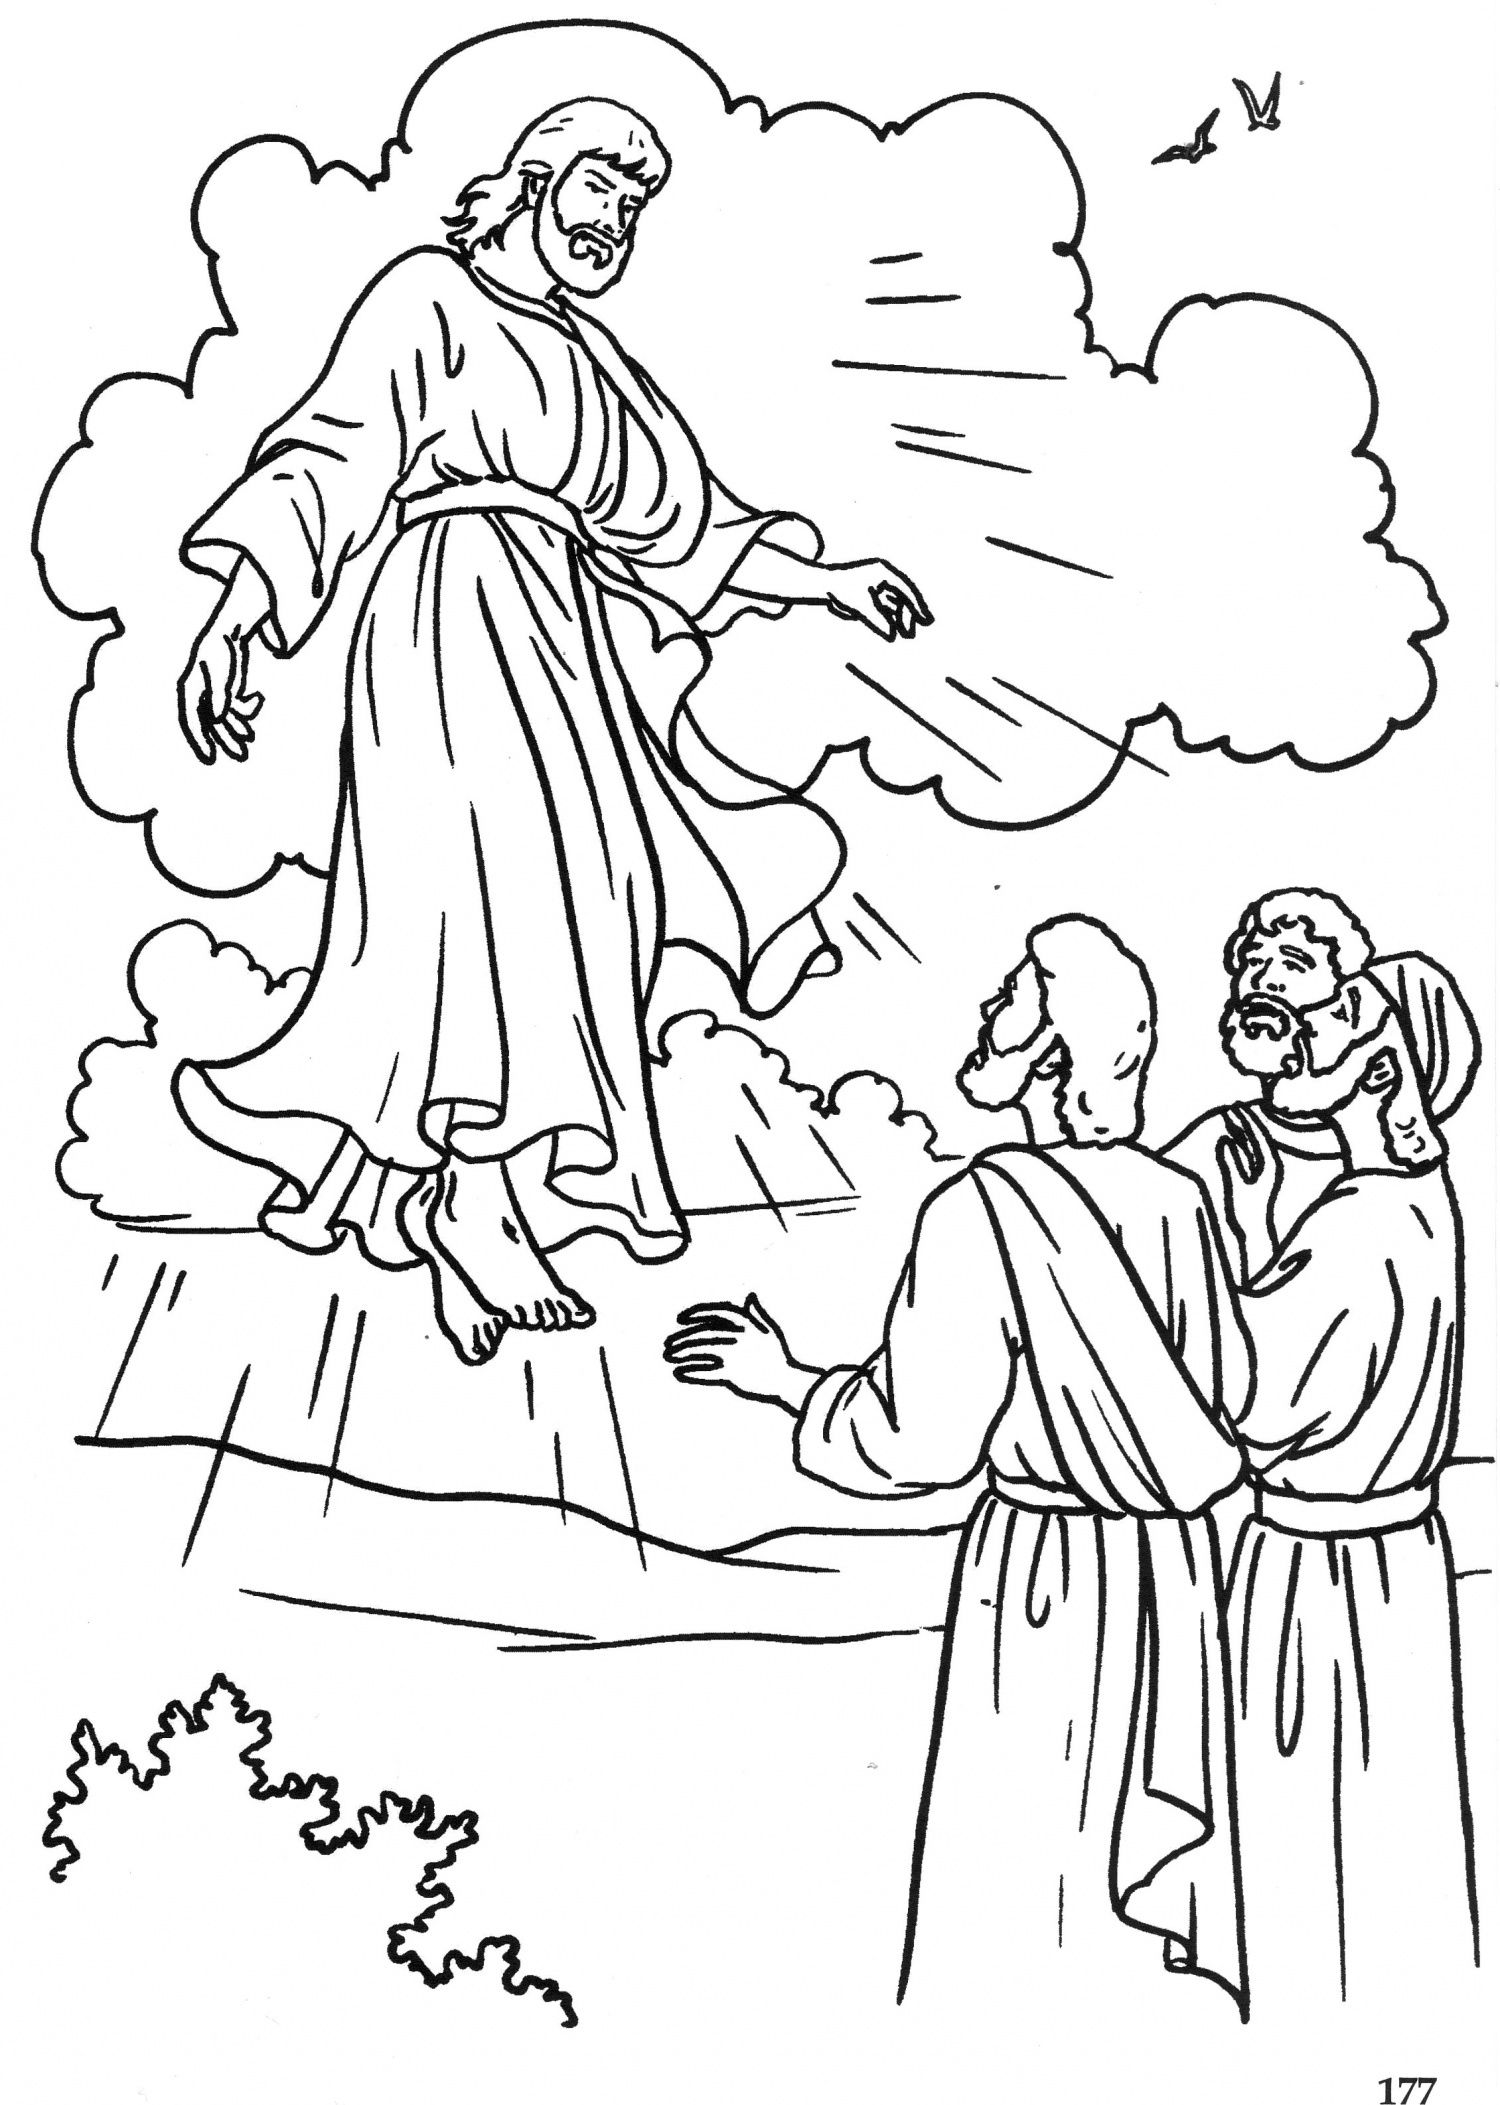 picture of jesus ascending to heaven jesus ascends to heaven giclee print at allposterscom of picture jesus ascending to heaven